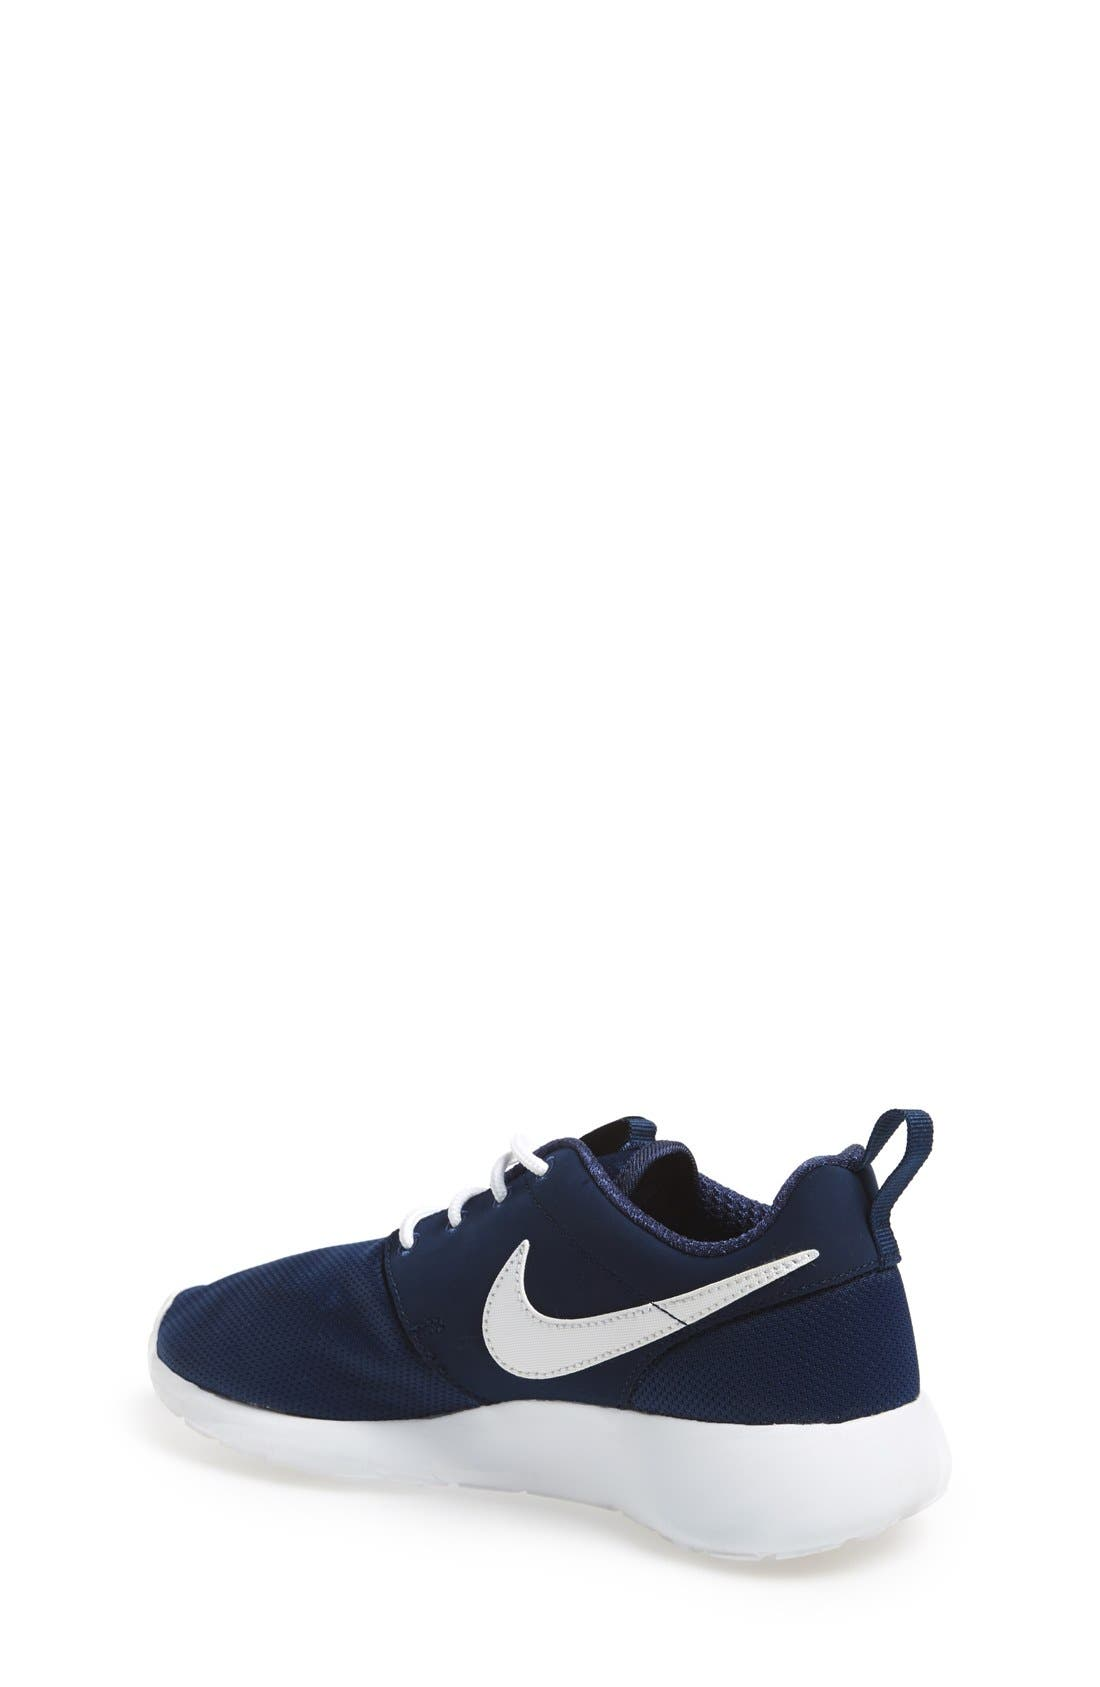 'Roshe Run' Sneaker,                             Alternate thumbnail 135, color,